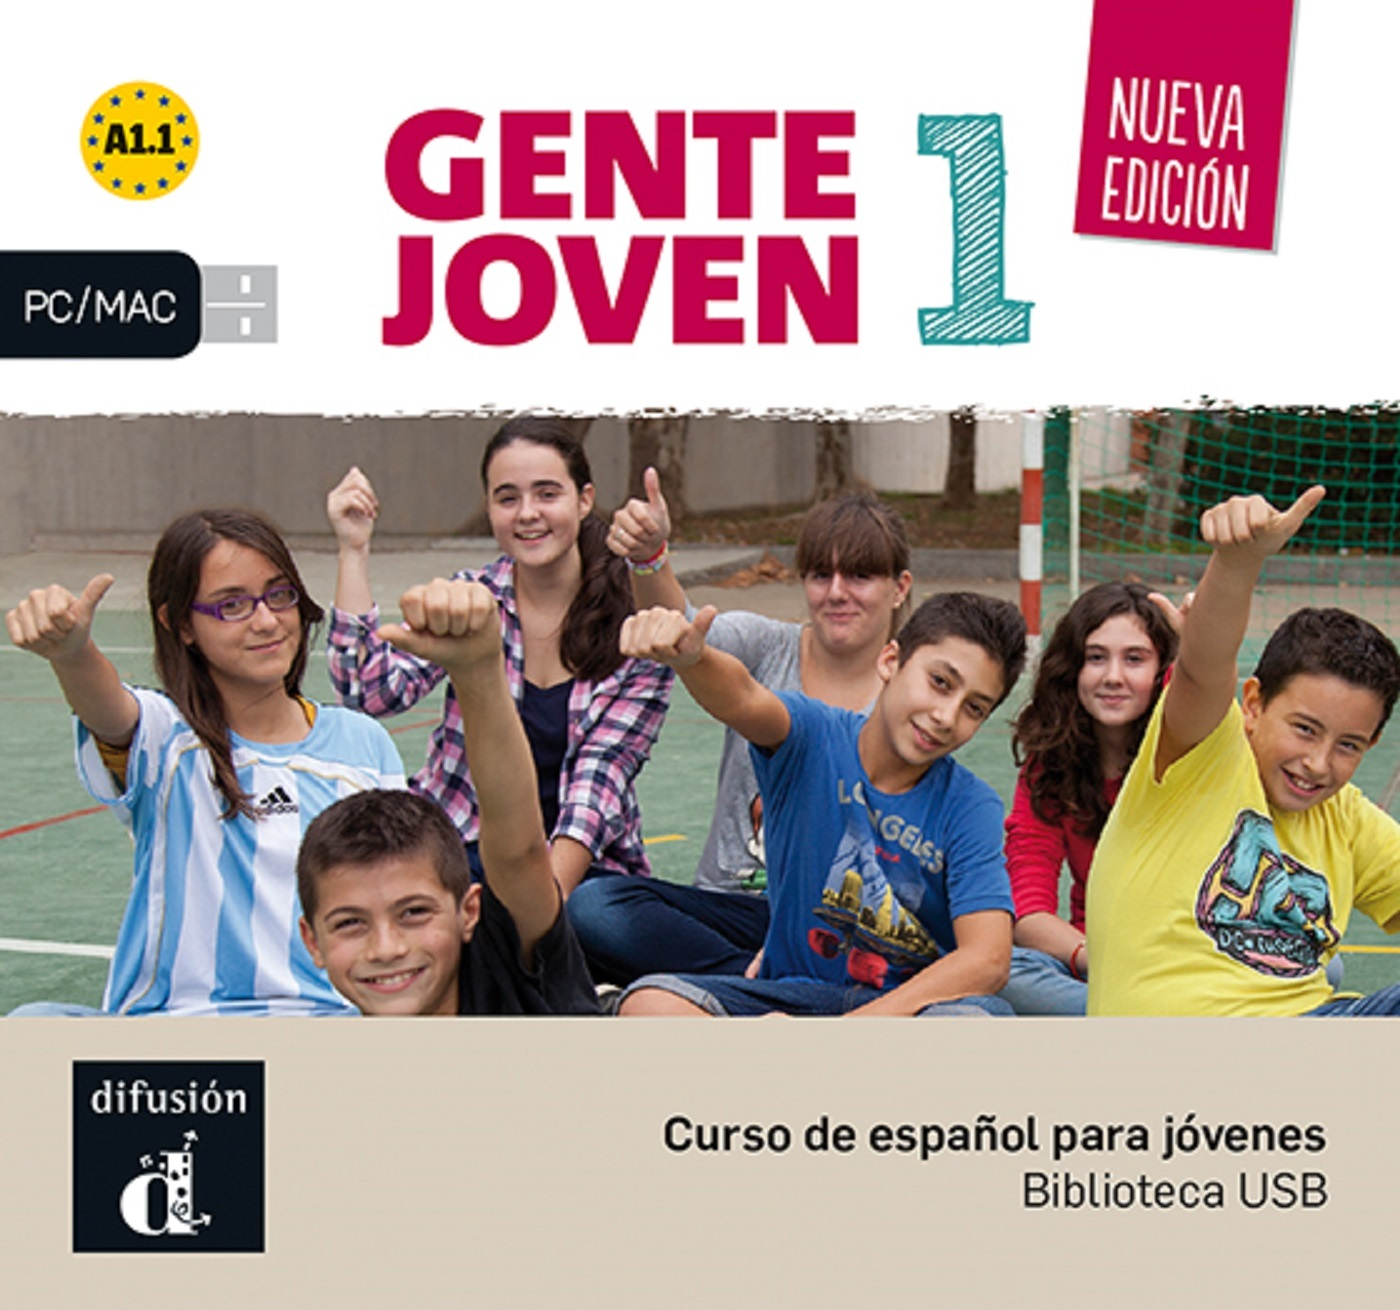 GENTE JOVEN 1 INT. NED - CLE USB